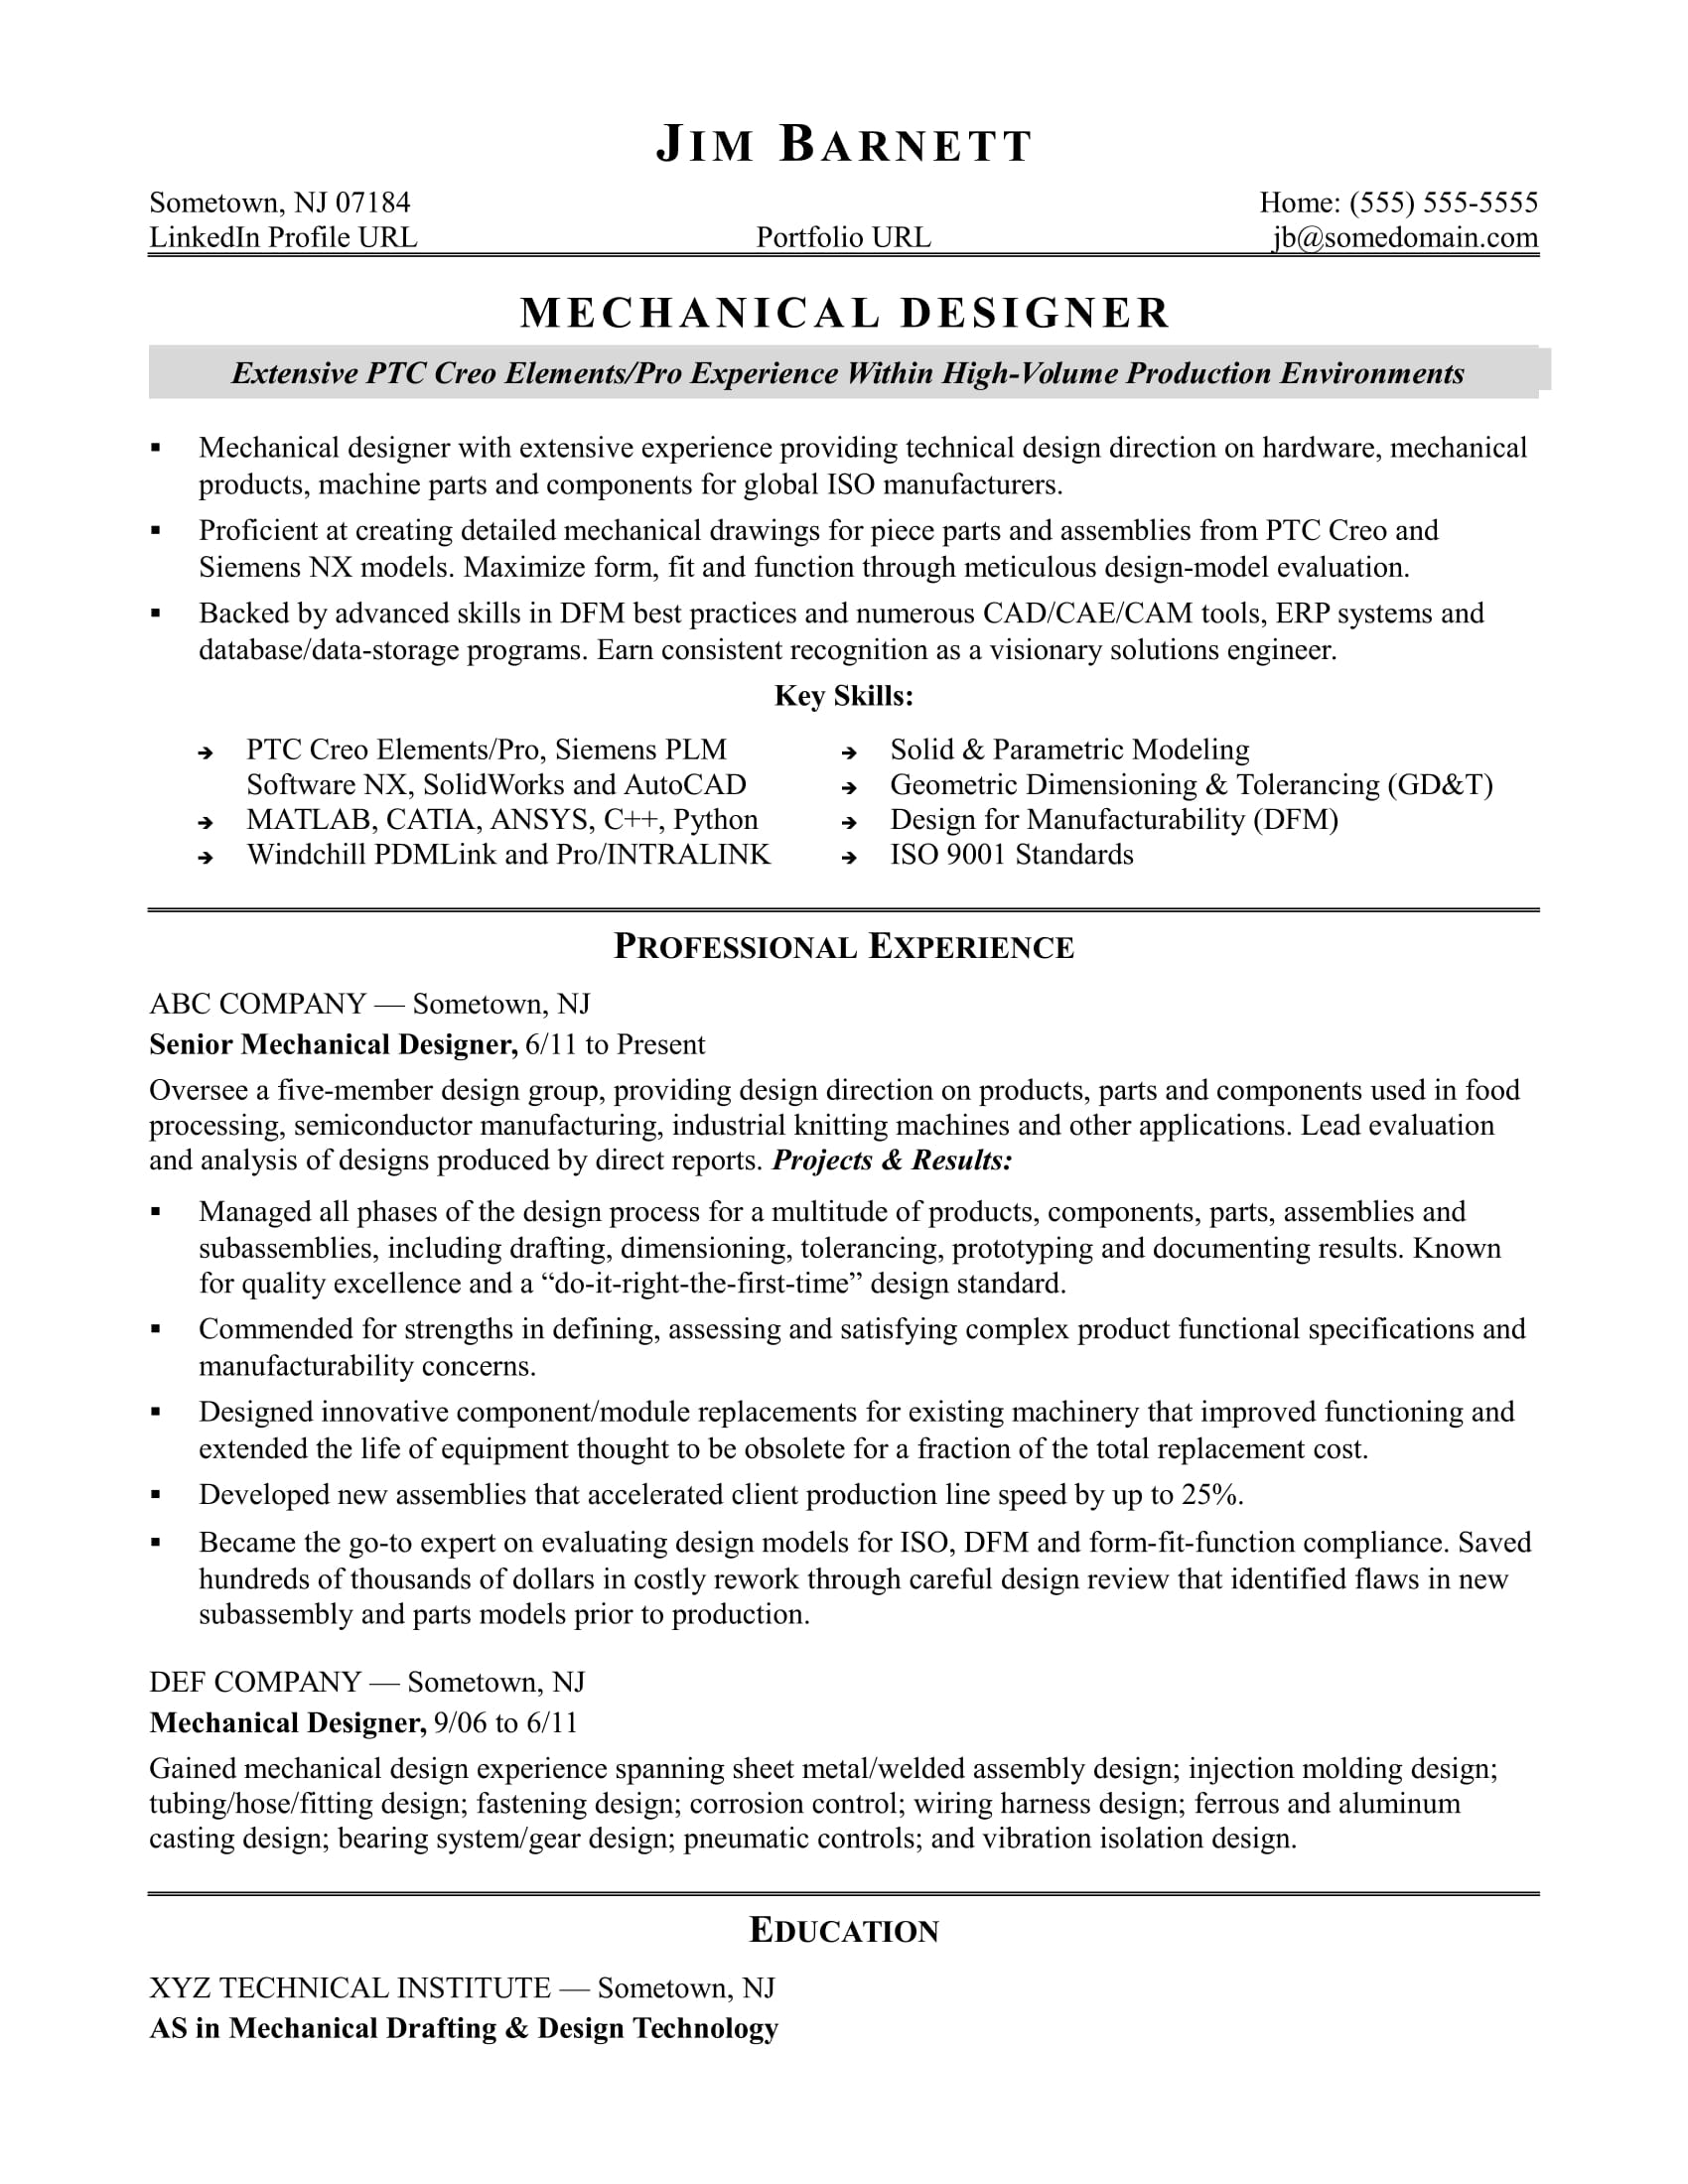 sample resume for an experienced mechanical designer monster entry level drafter coast Resume Entry Level Drafter Resume Sample